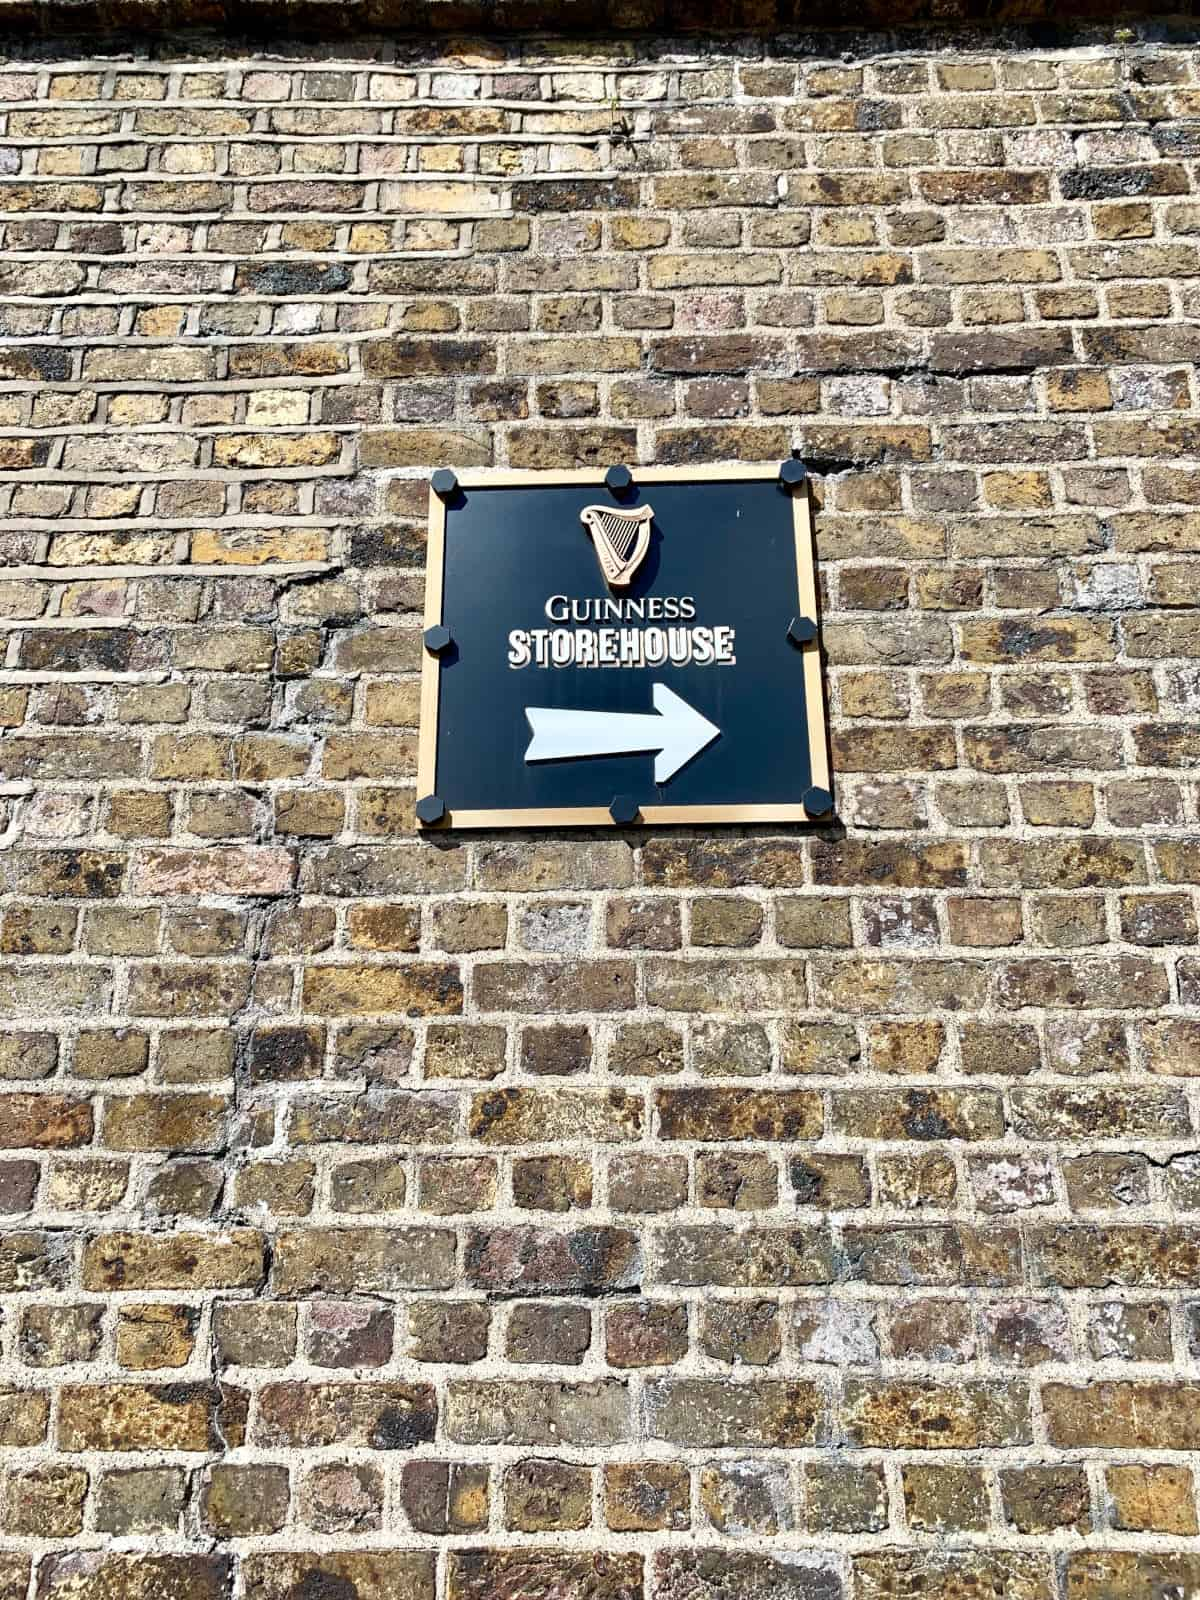 What It's Like Visiting Guinness Storehouse in Dublin, Ireland | Doing a tour at Guinness Storehouse is one of the top things to do in Dublin, but is it worth it? What it's like visiting Ireland's biggest tourist experience. What to do in Dublin, Ireland itinerary ideas. #dublin #guinness #ireland